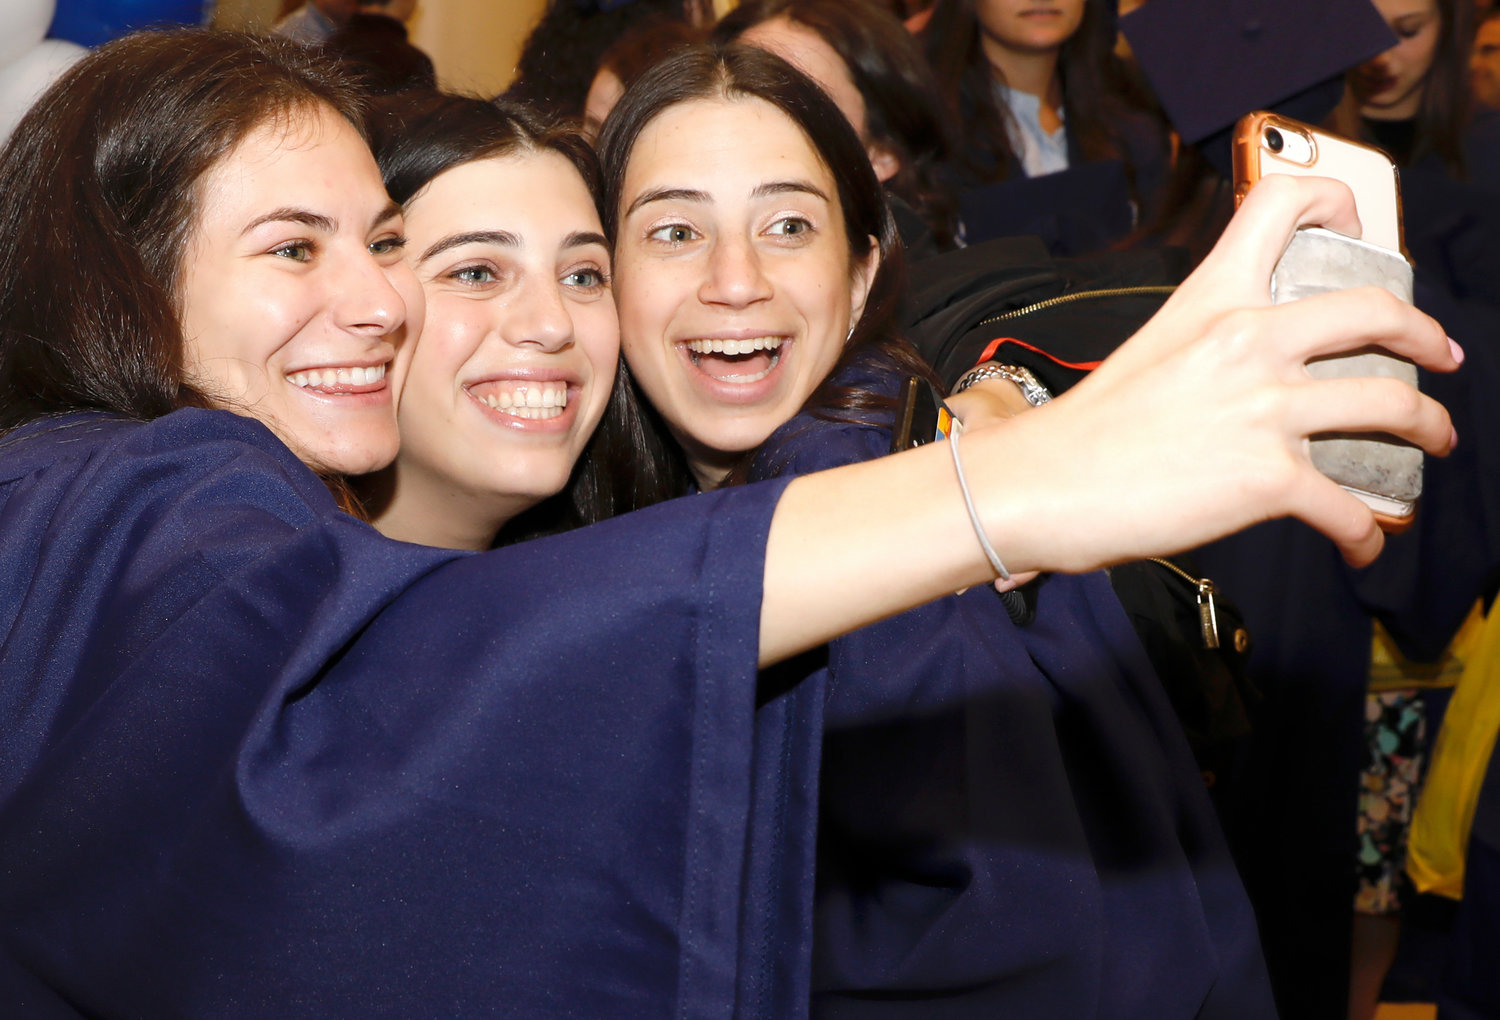 The YU commencement in Madison Square Garden was the occasion for a selfie celebration.